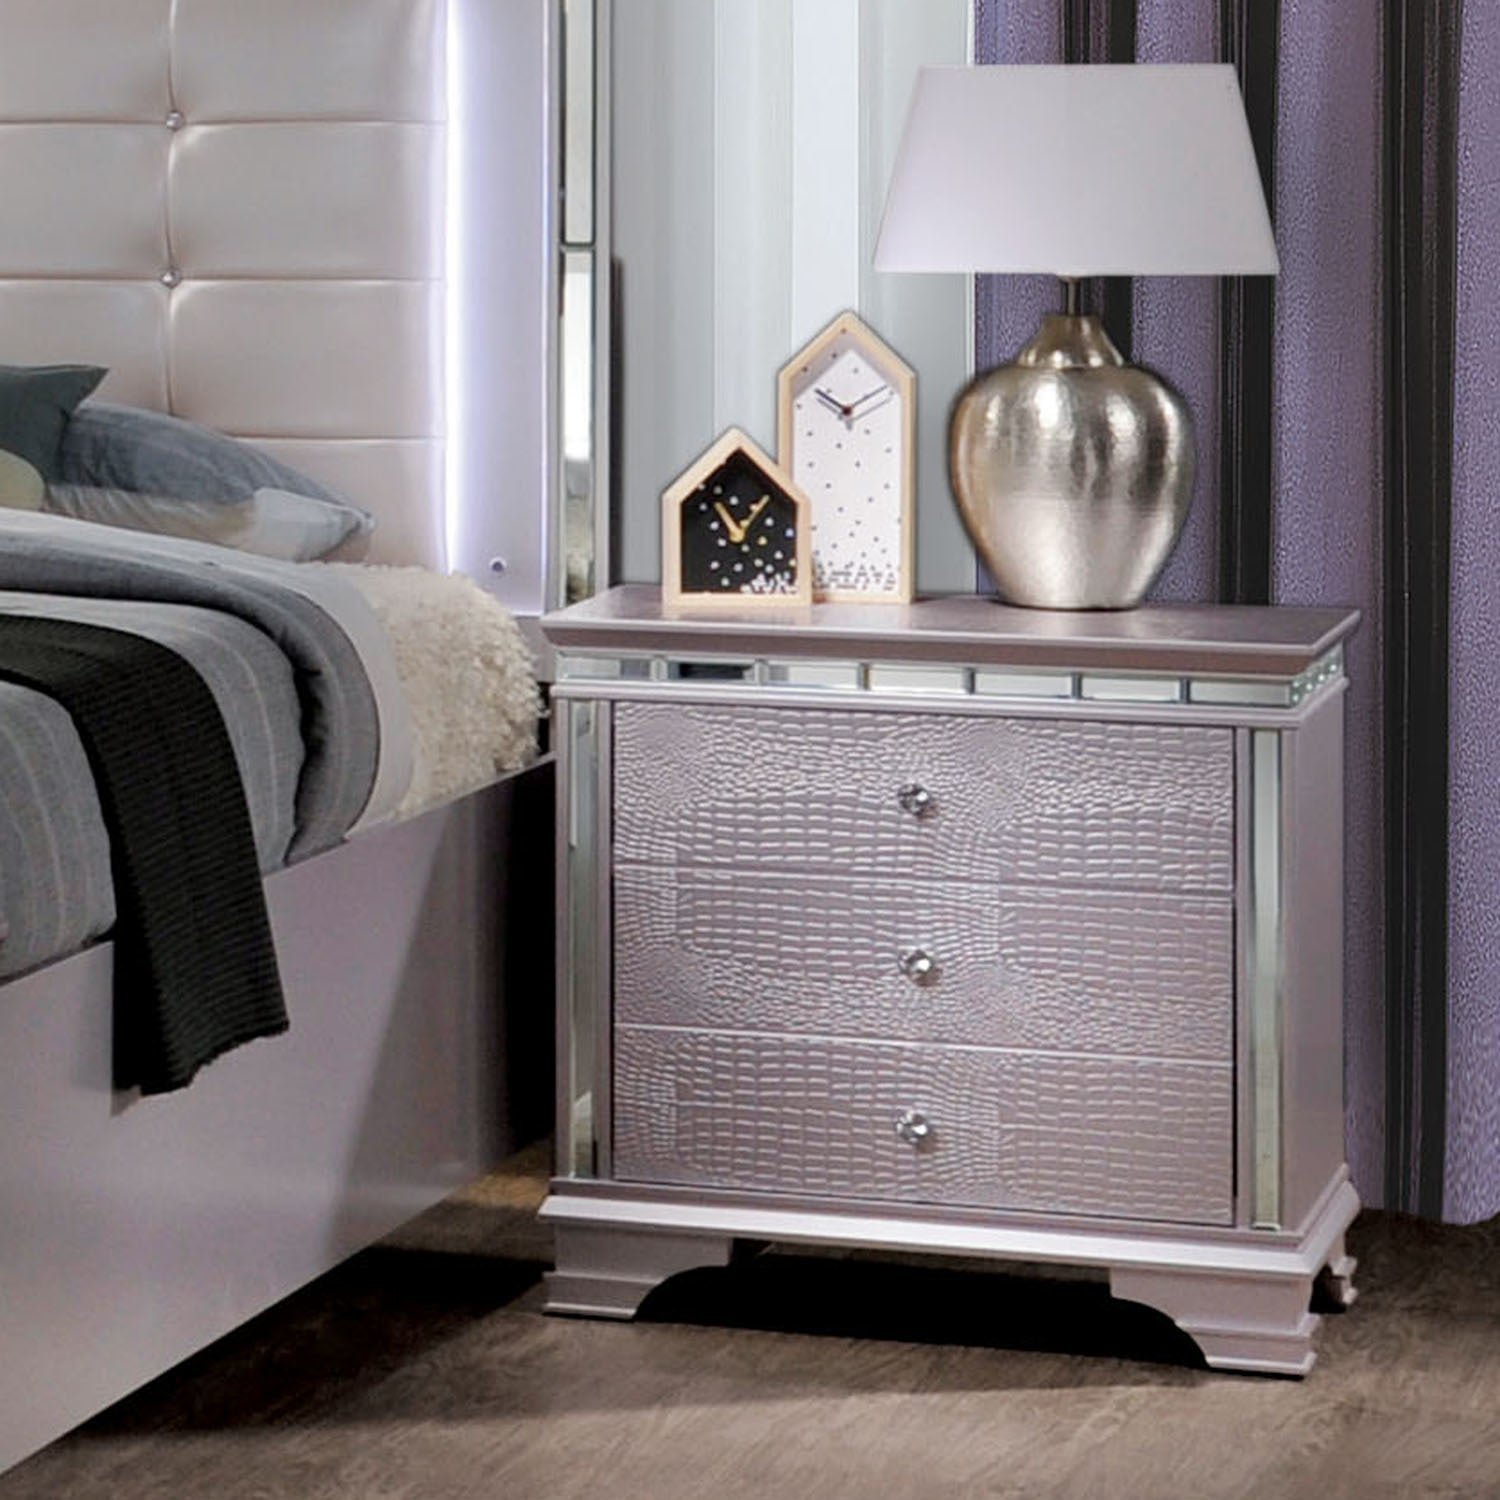 Shop furniture of america diadem glam silver rose 3 drawer nightstand on sale free shipping today overstock com 19963540